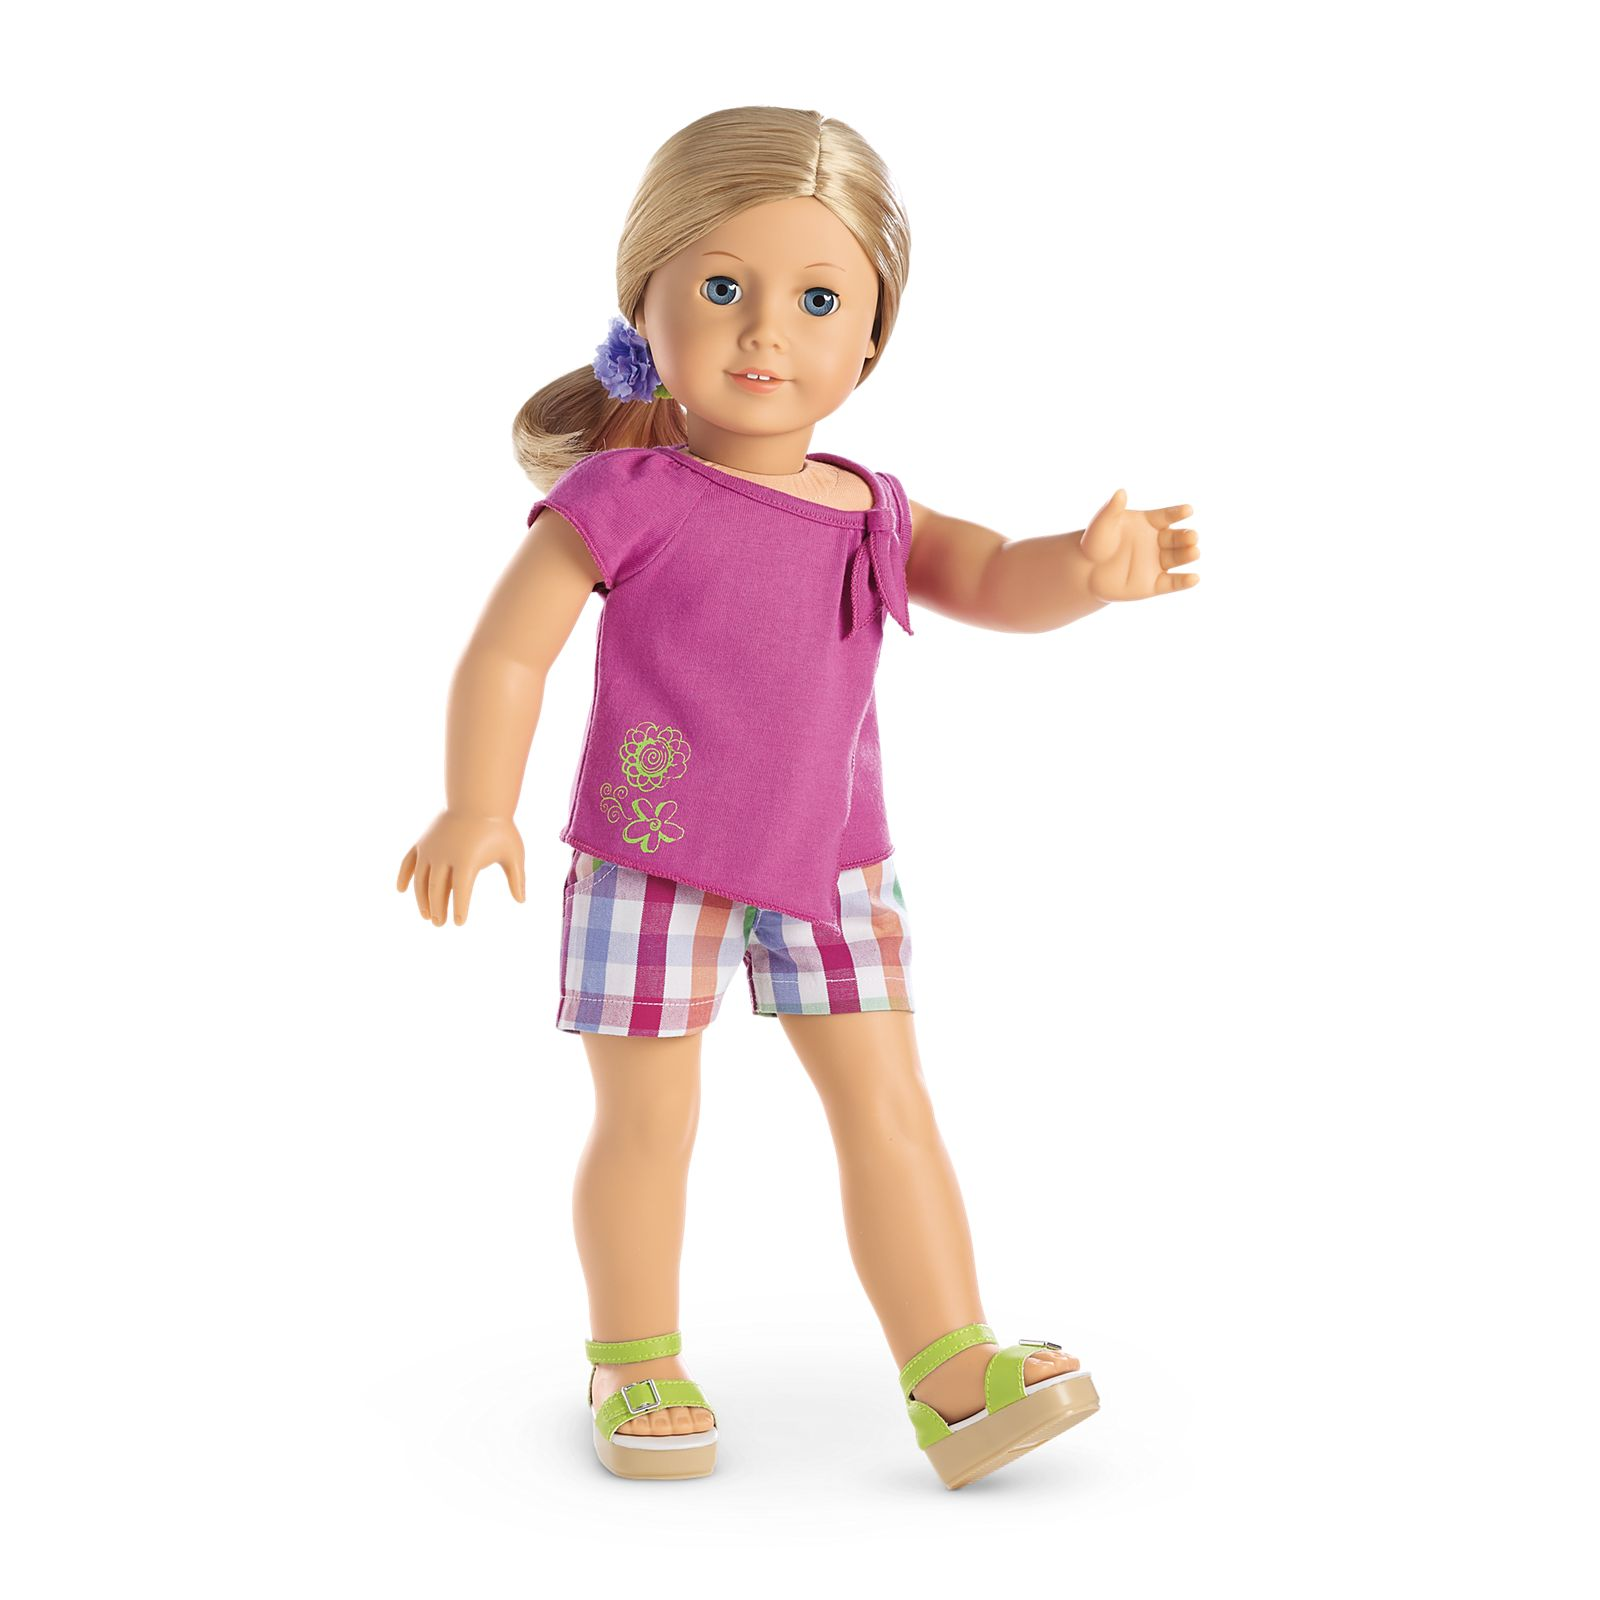 Sunshine Garden Outfit for 5-inch Dolls